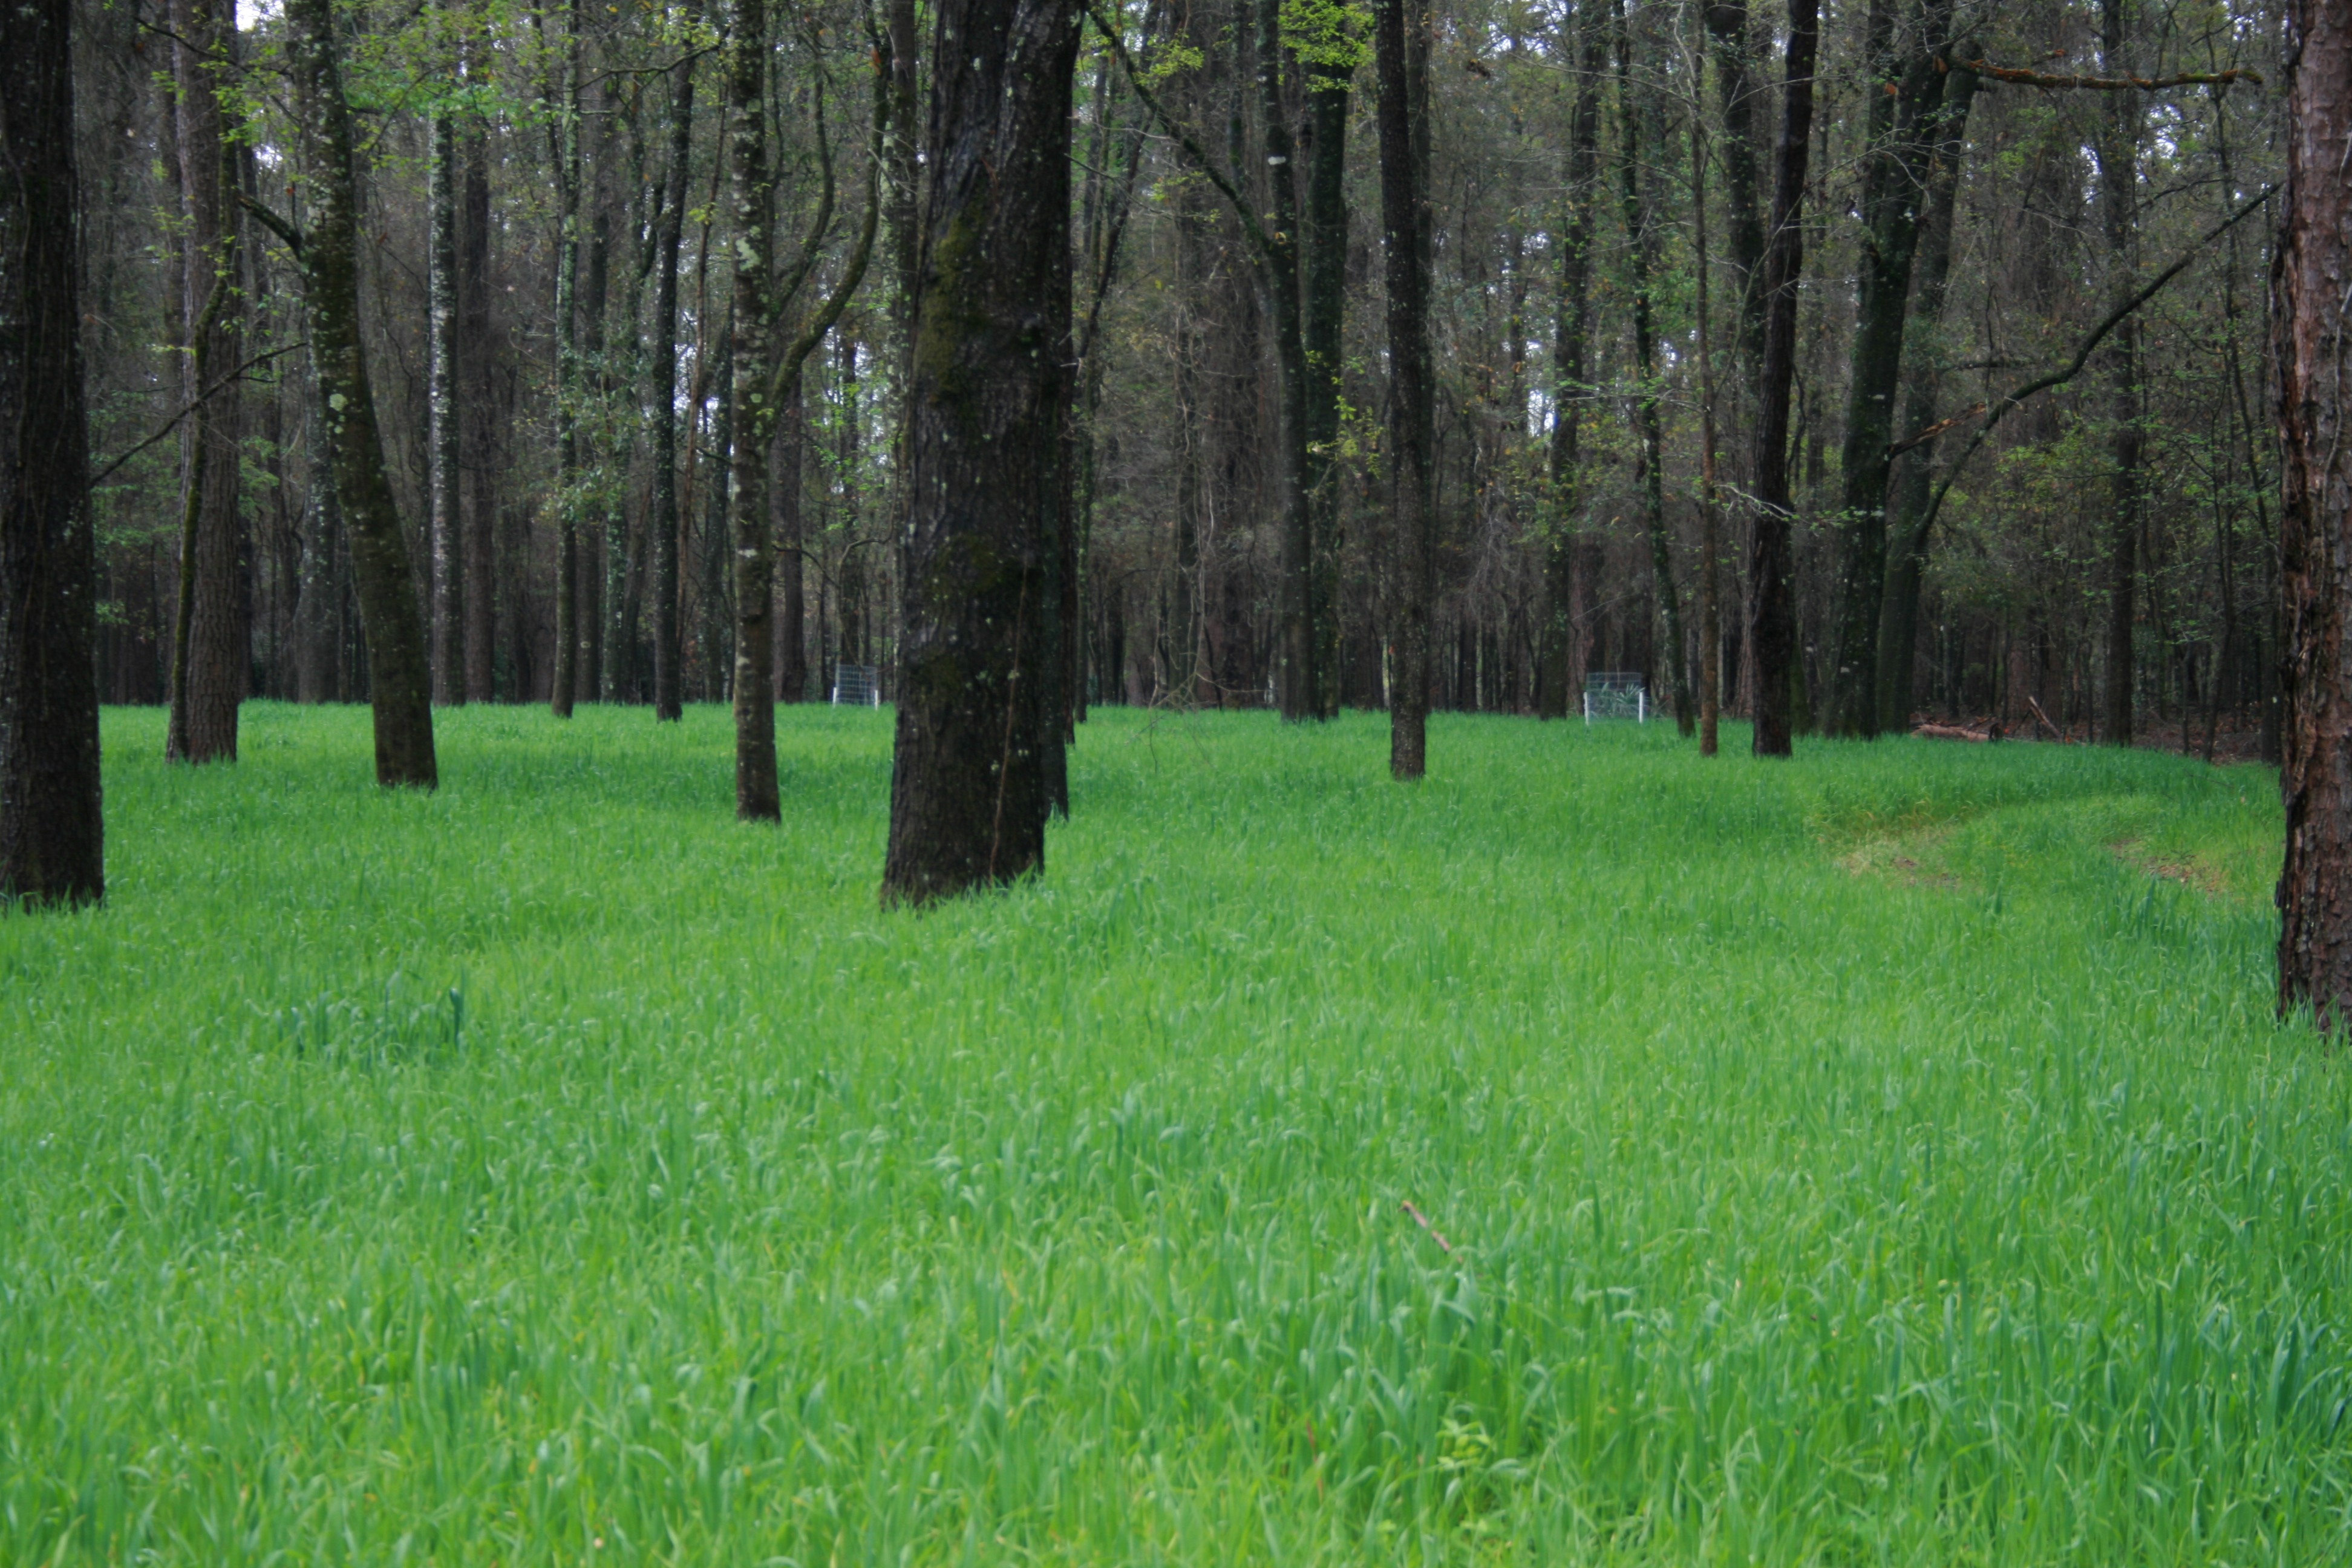 Landscaping for Wildlife with Food Plots | Gardening in ...